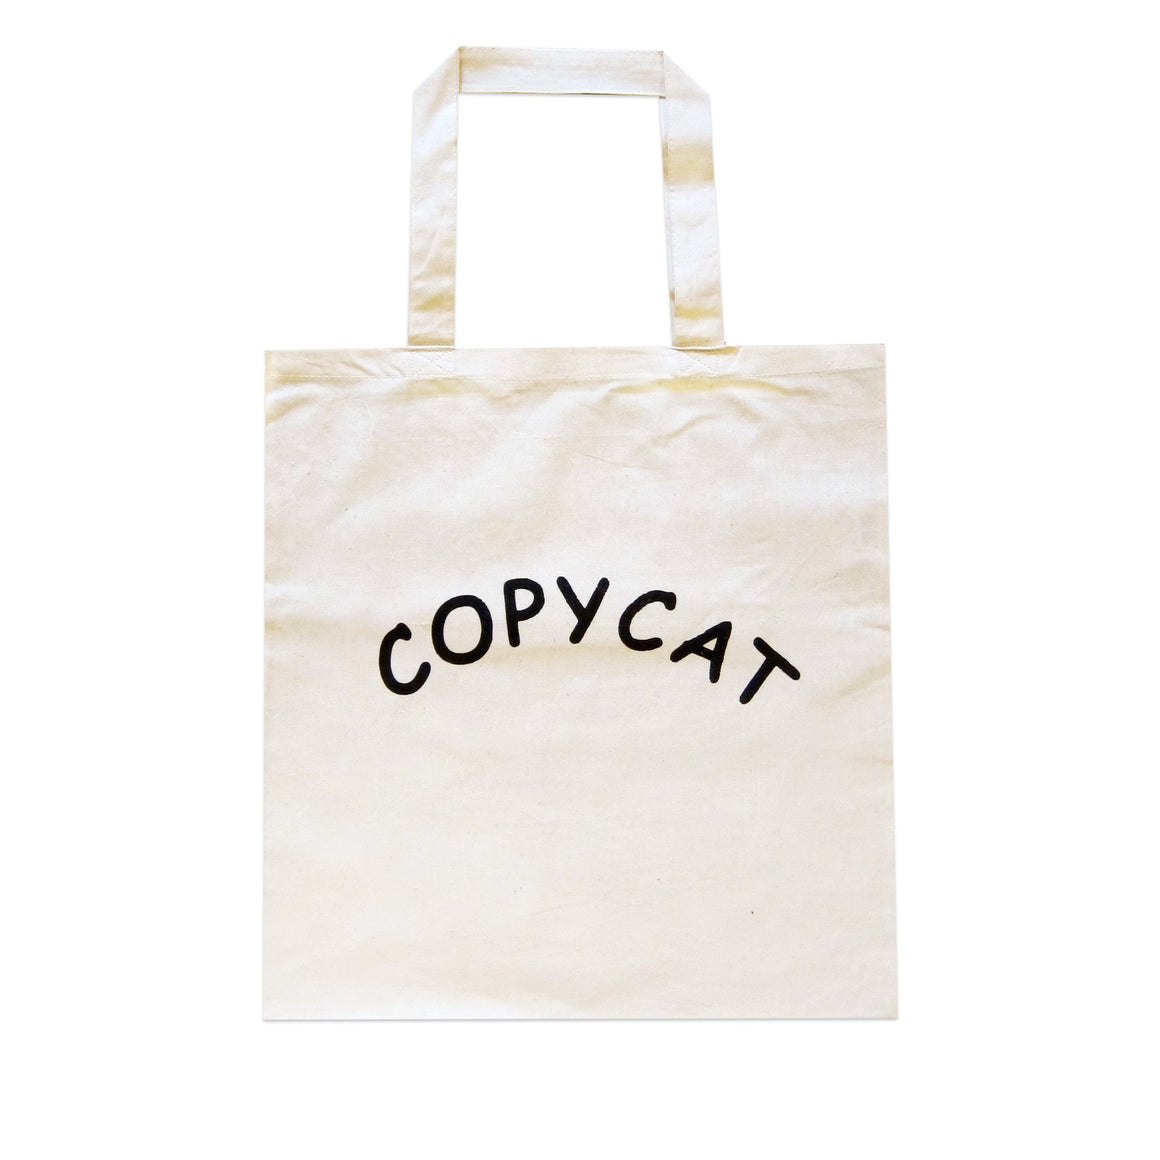 Comic Sands photocopy tote bag